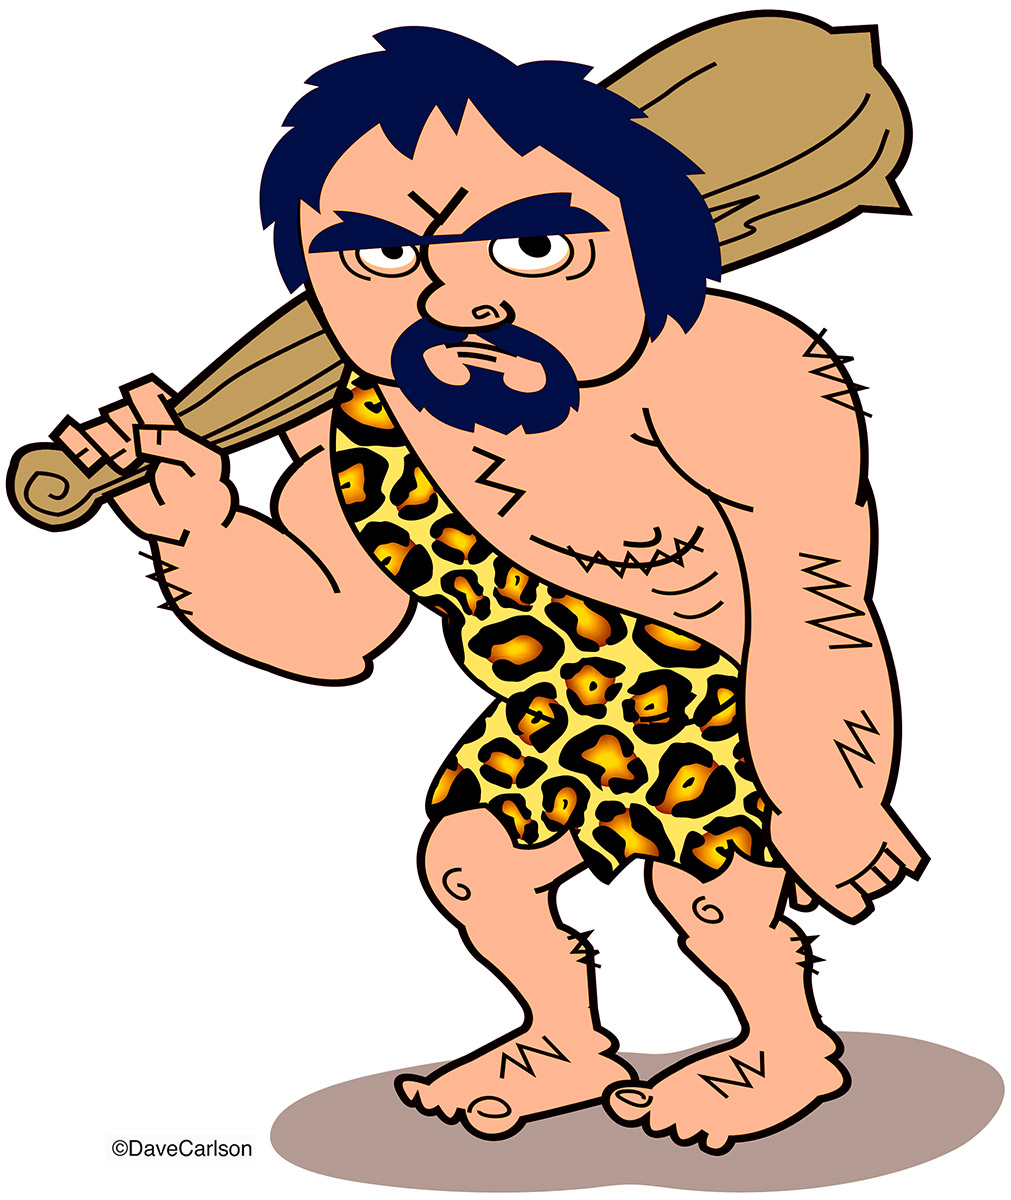 Caveman cartoon, Neanderthal man with club, photo